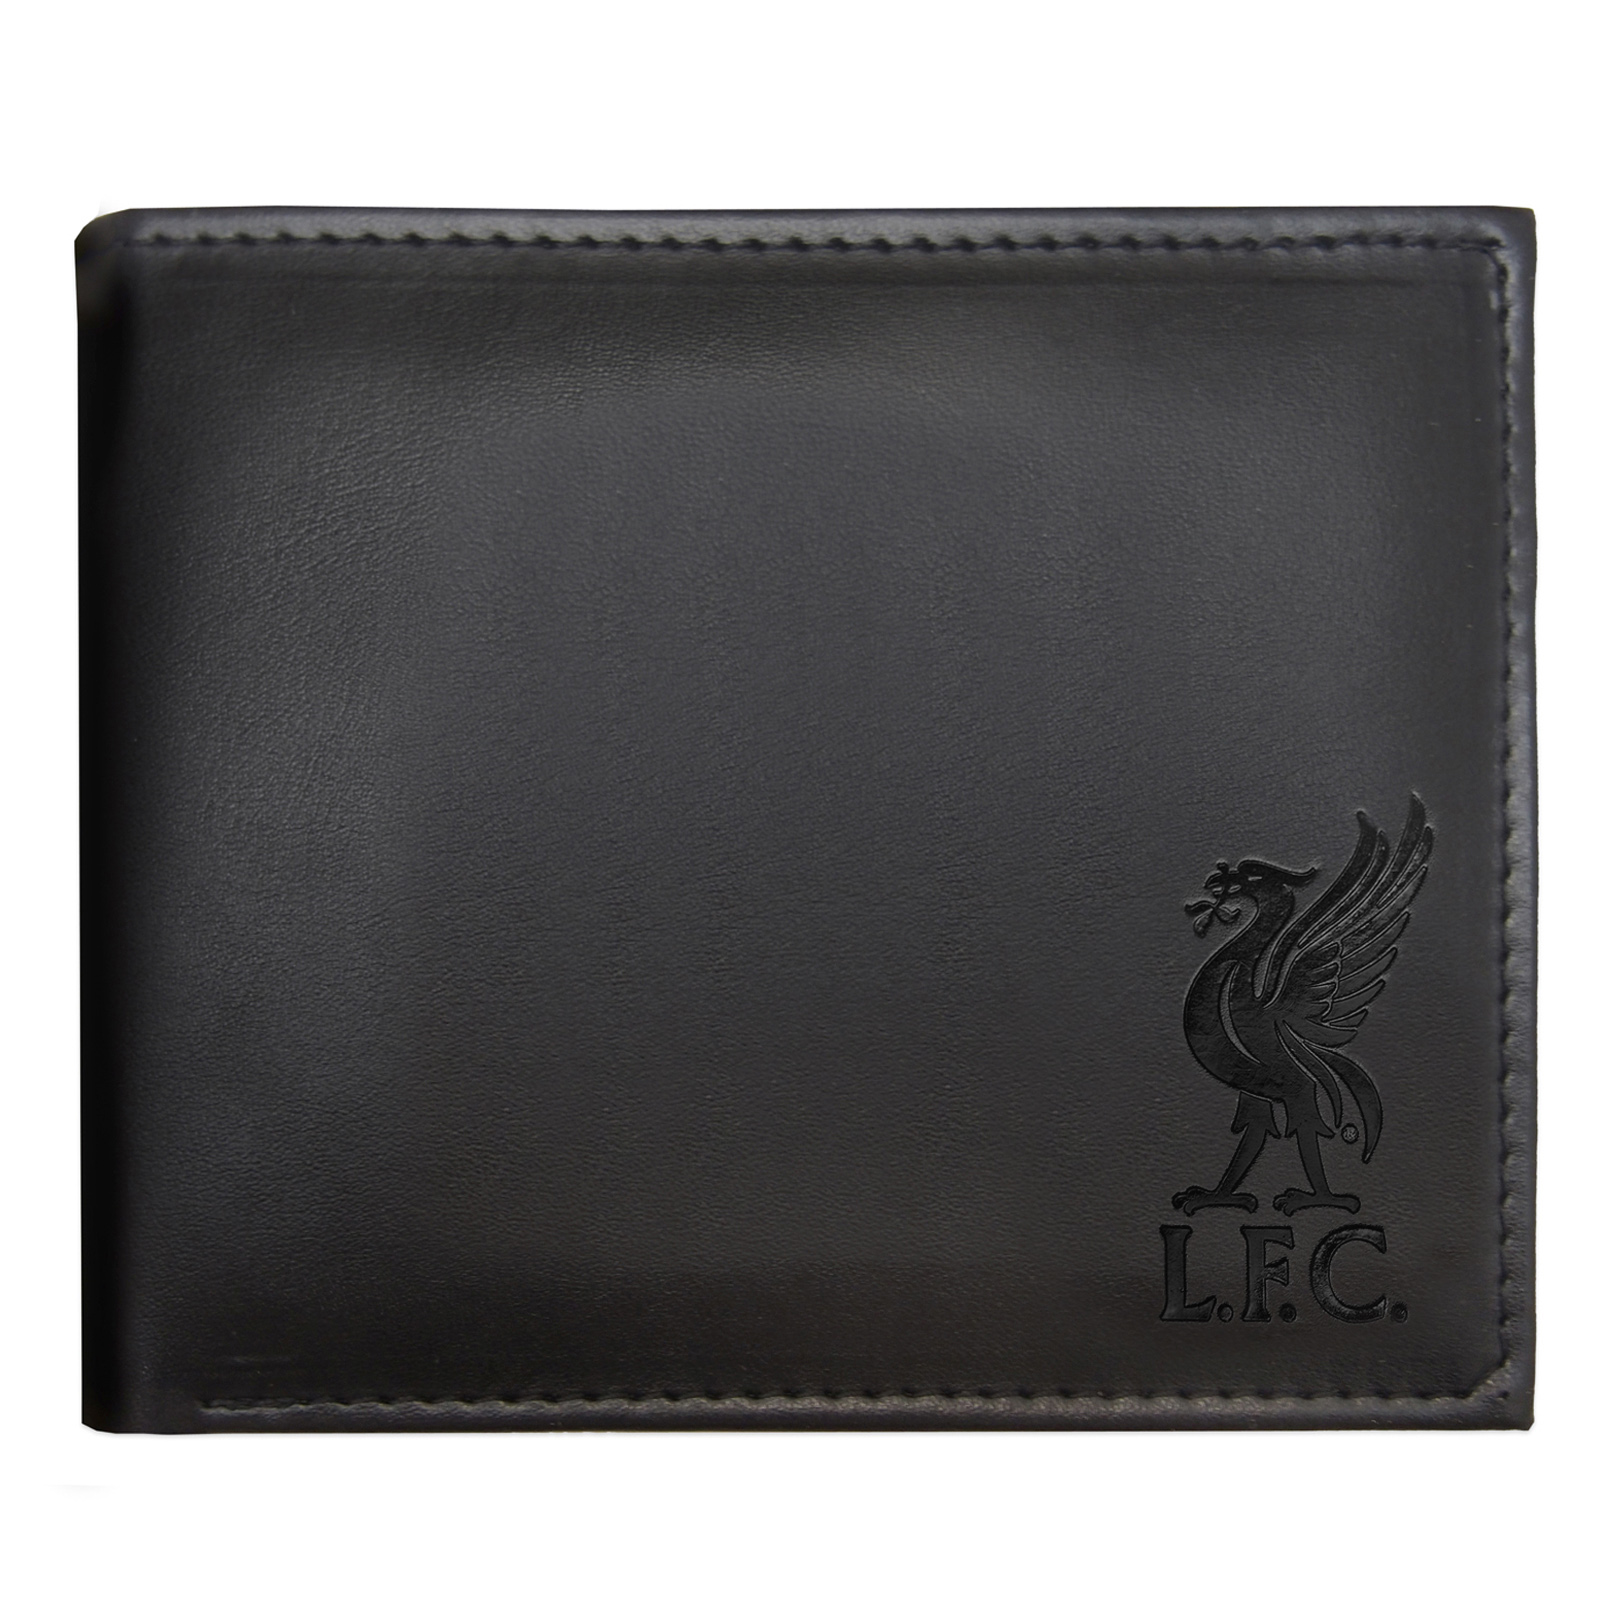 Liverpool-FC-Official-Football-Gift-Embossed-Crest-Wallet-Black Indexbild 6